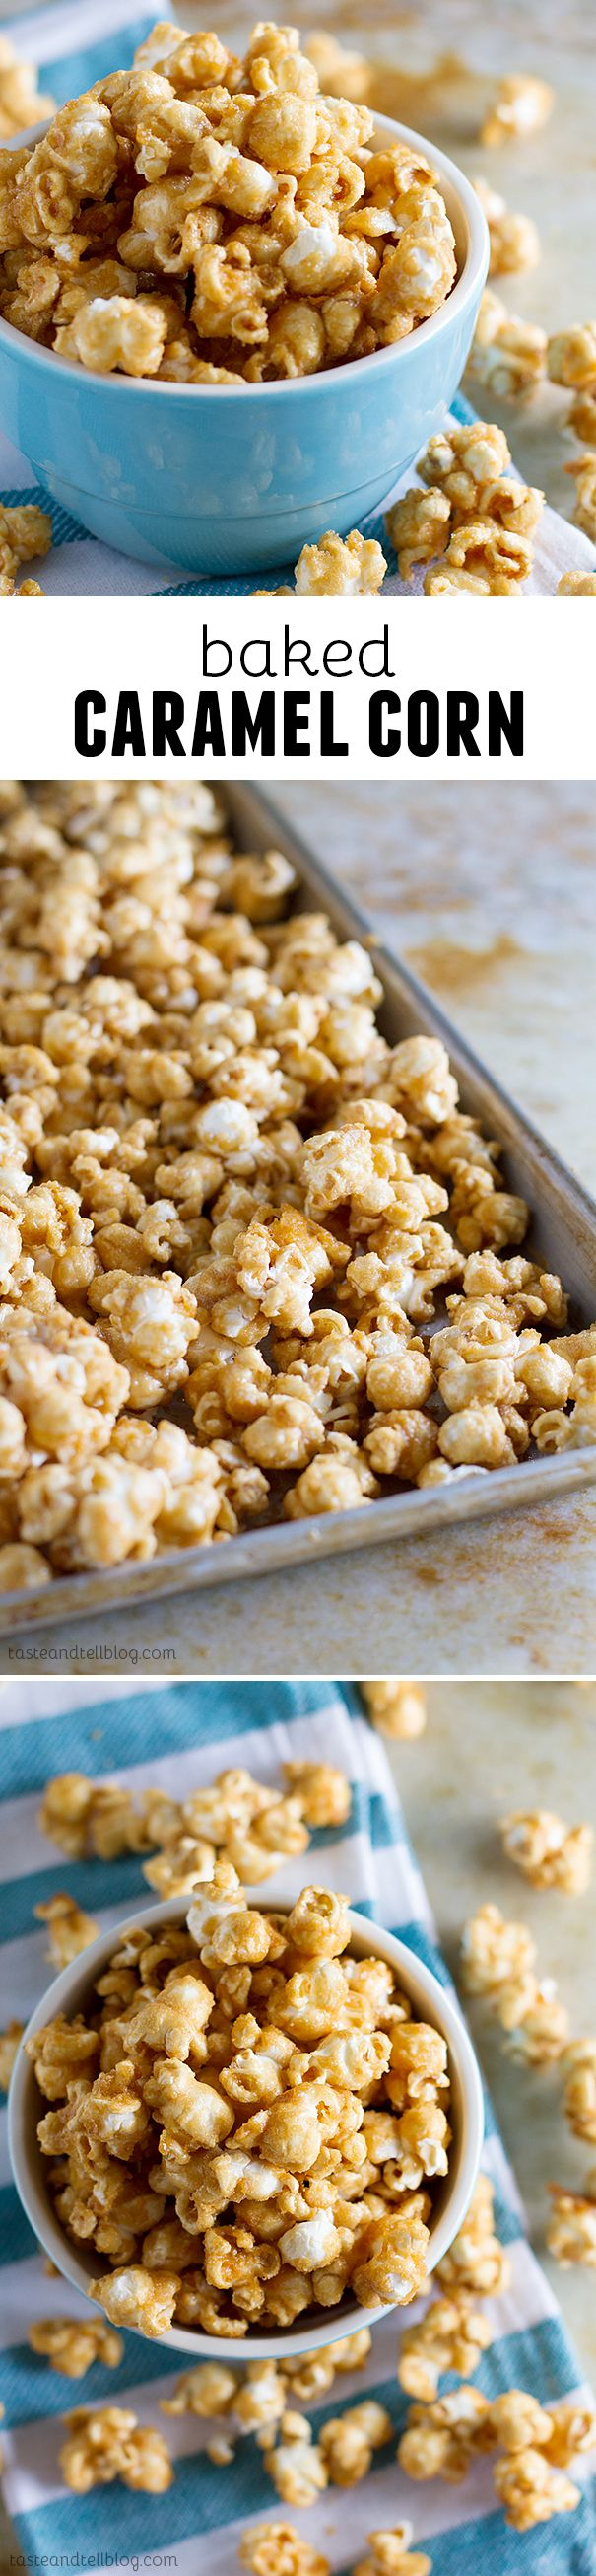 Baked Caramel Corn- thought 6 quarts would last more than a day... I was wrong.